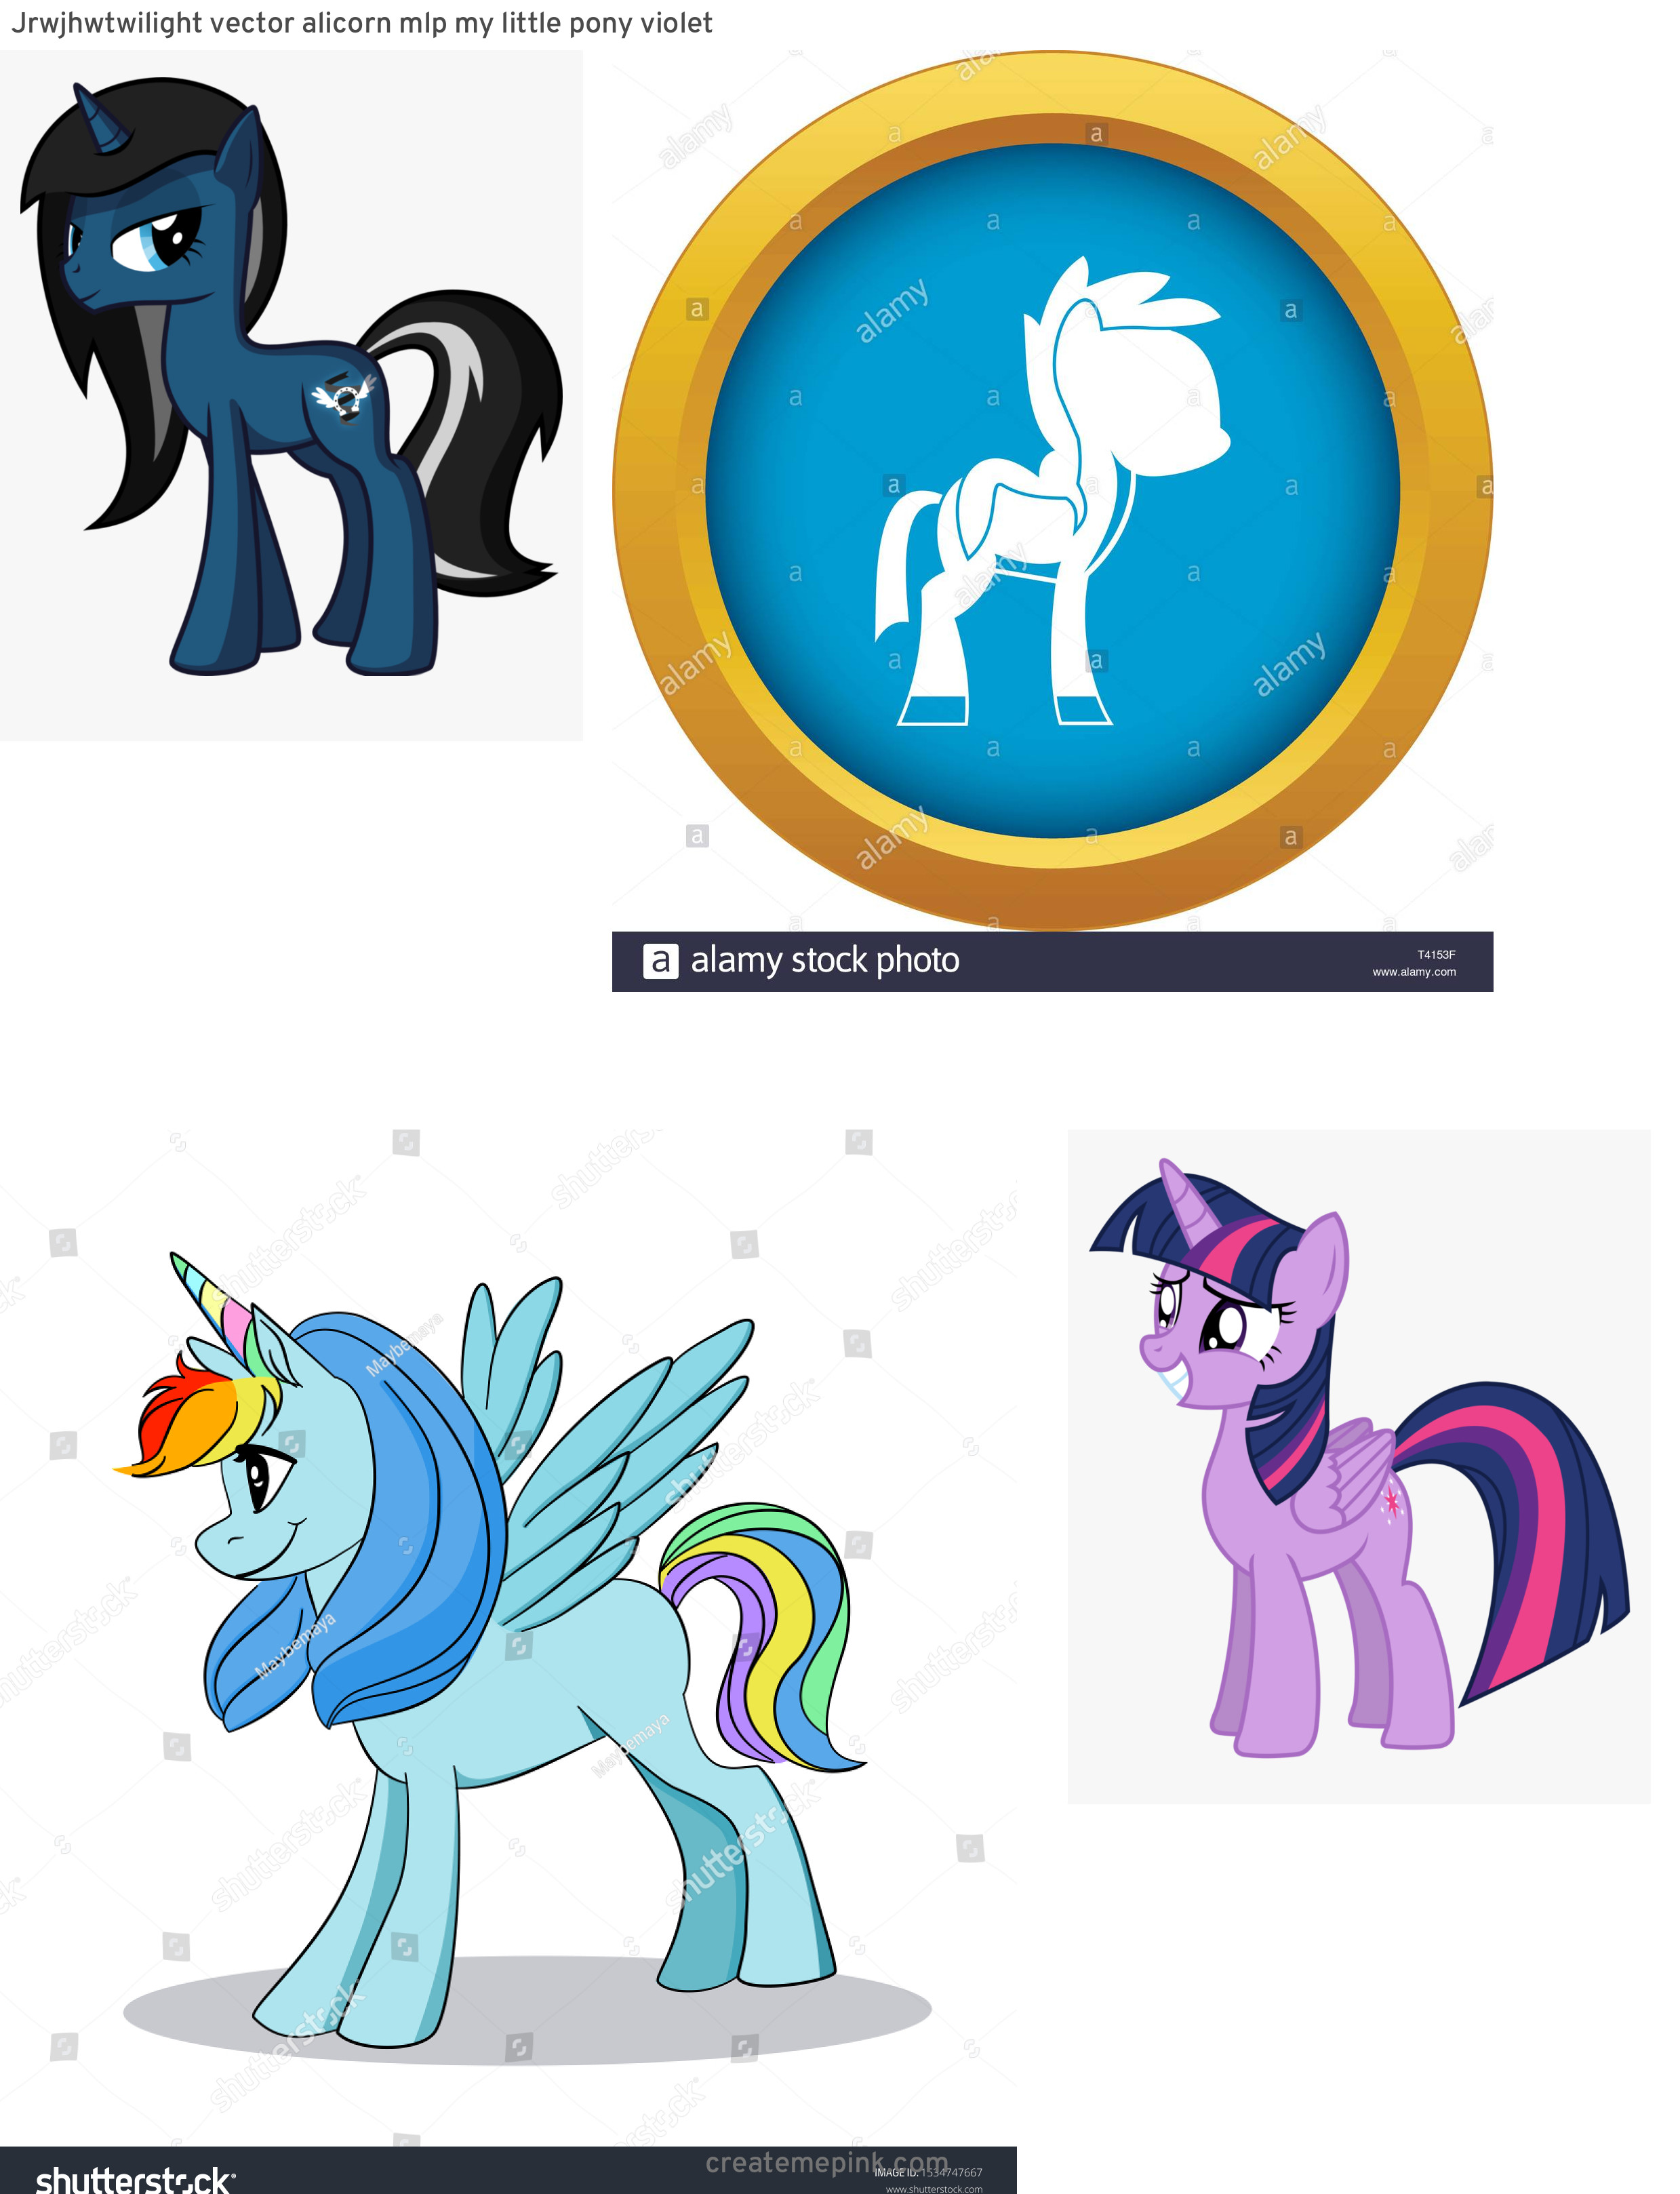 MLP Pony Stallion Vector: Jrwjhwtwilight Vector Alicorn Mlp My Little Pony Violet